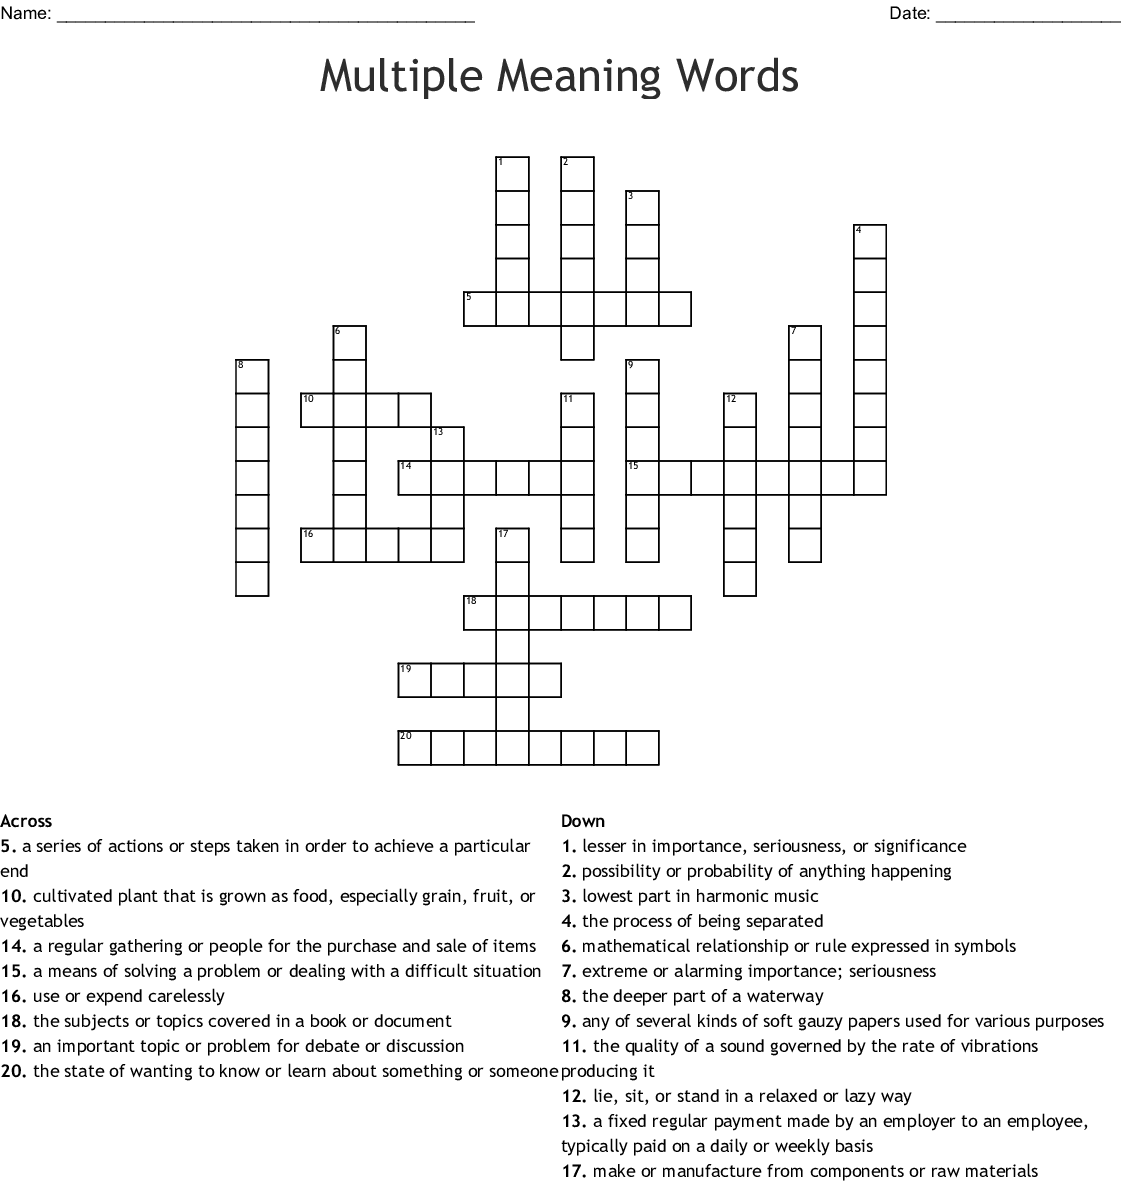 Multiple Meaning Words Crossword